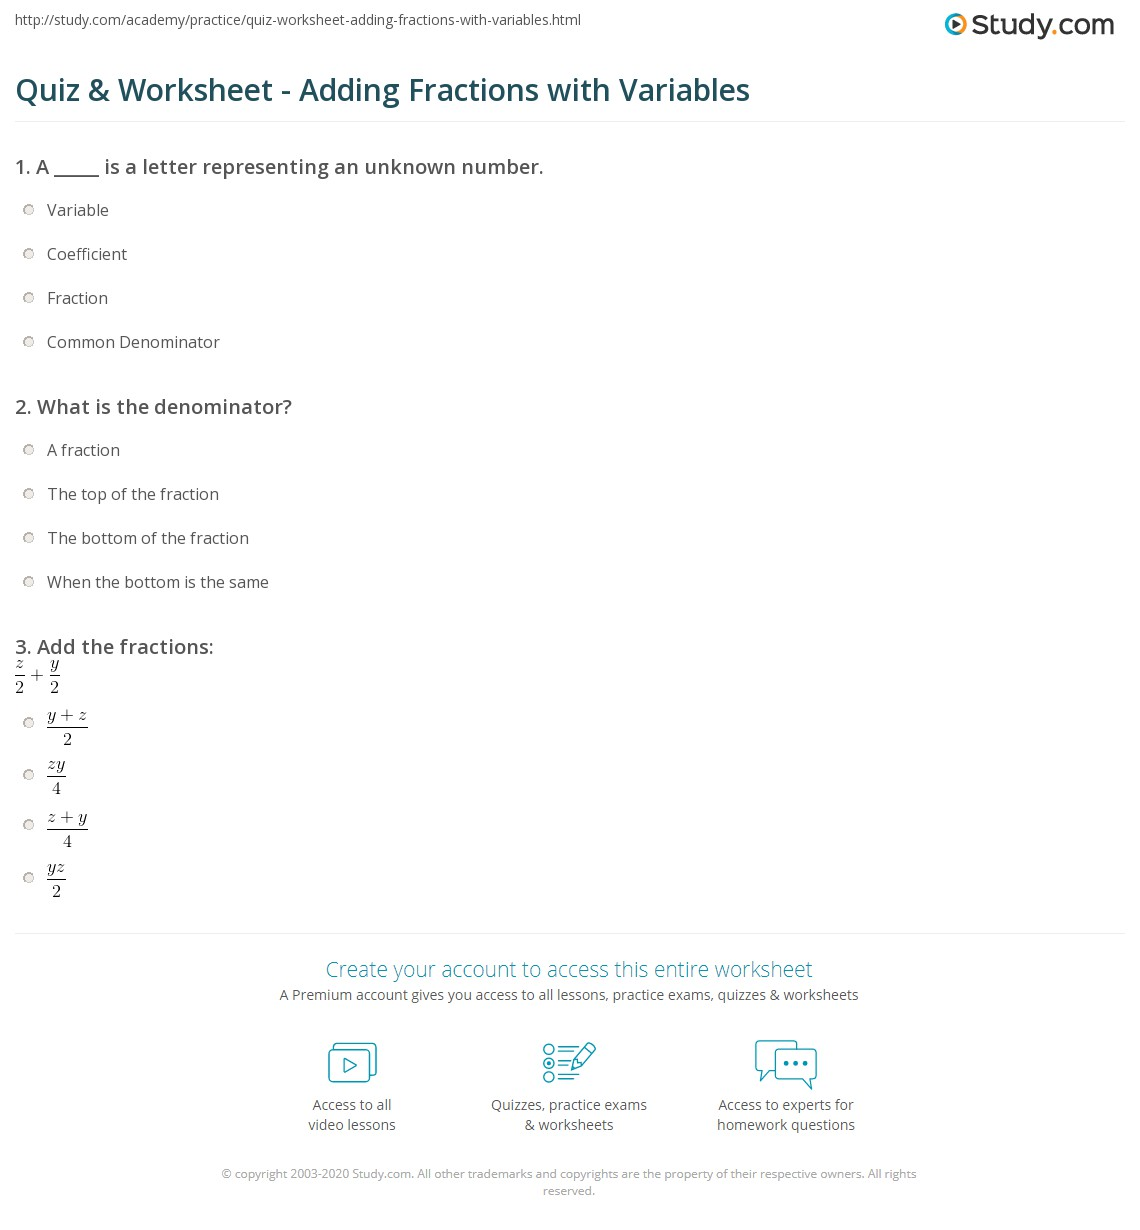 Quiz & Worksheet - Adding Fractions with Variables | Study.com